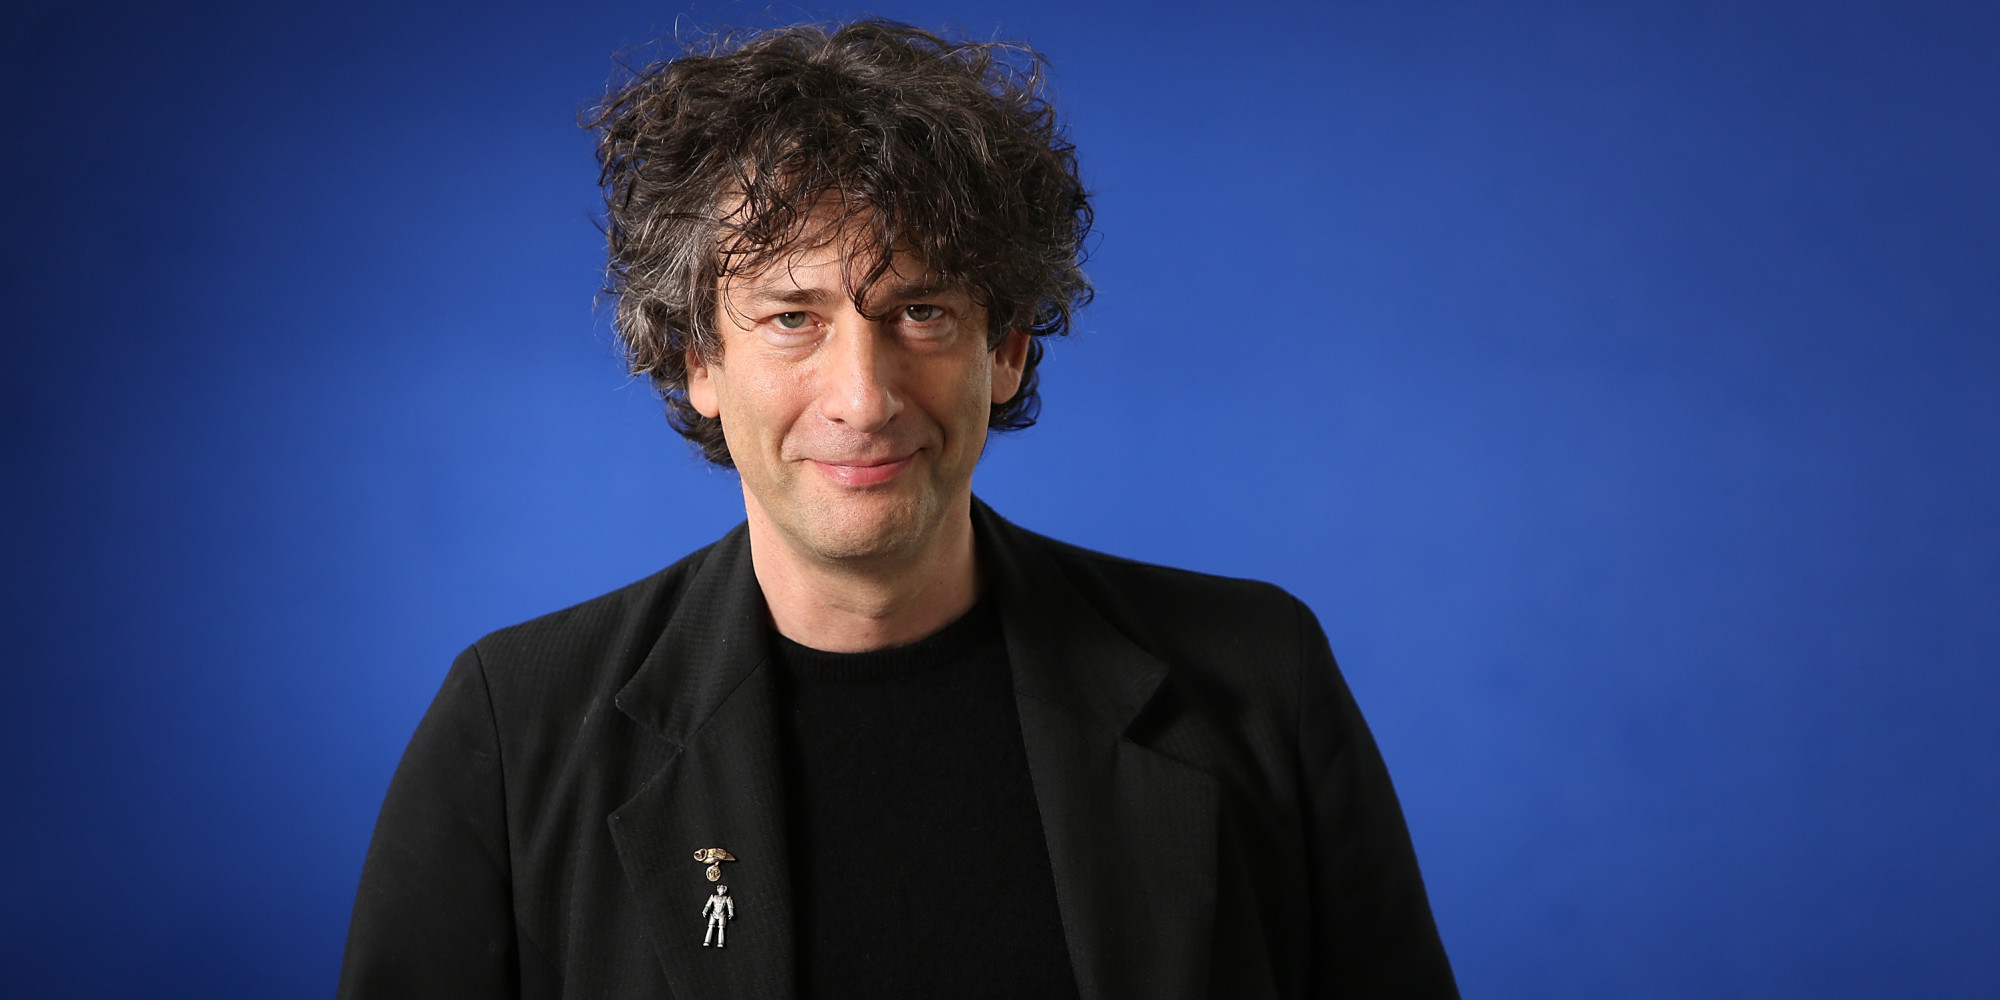 Great Advise from Neil Gaiman